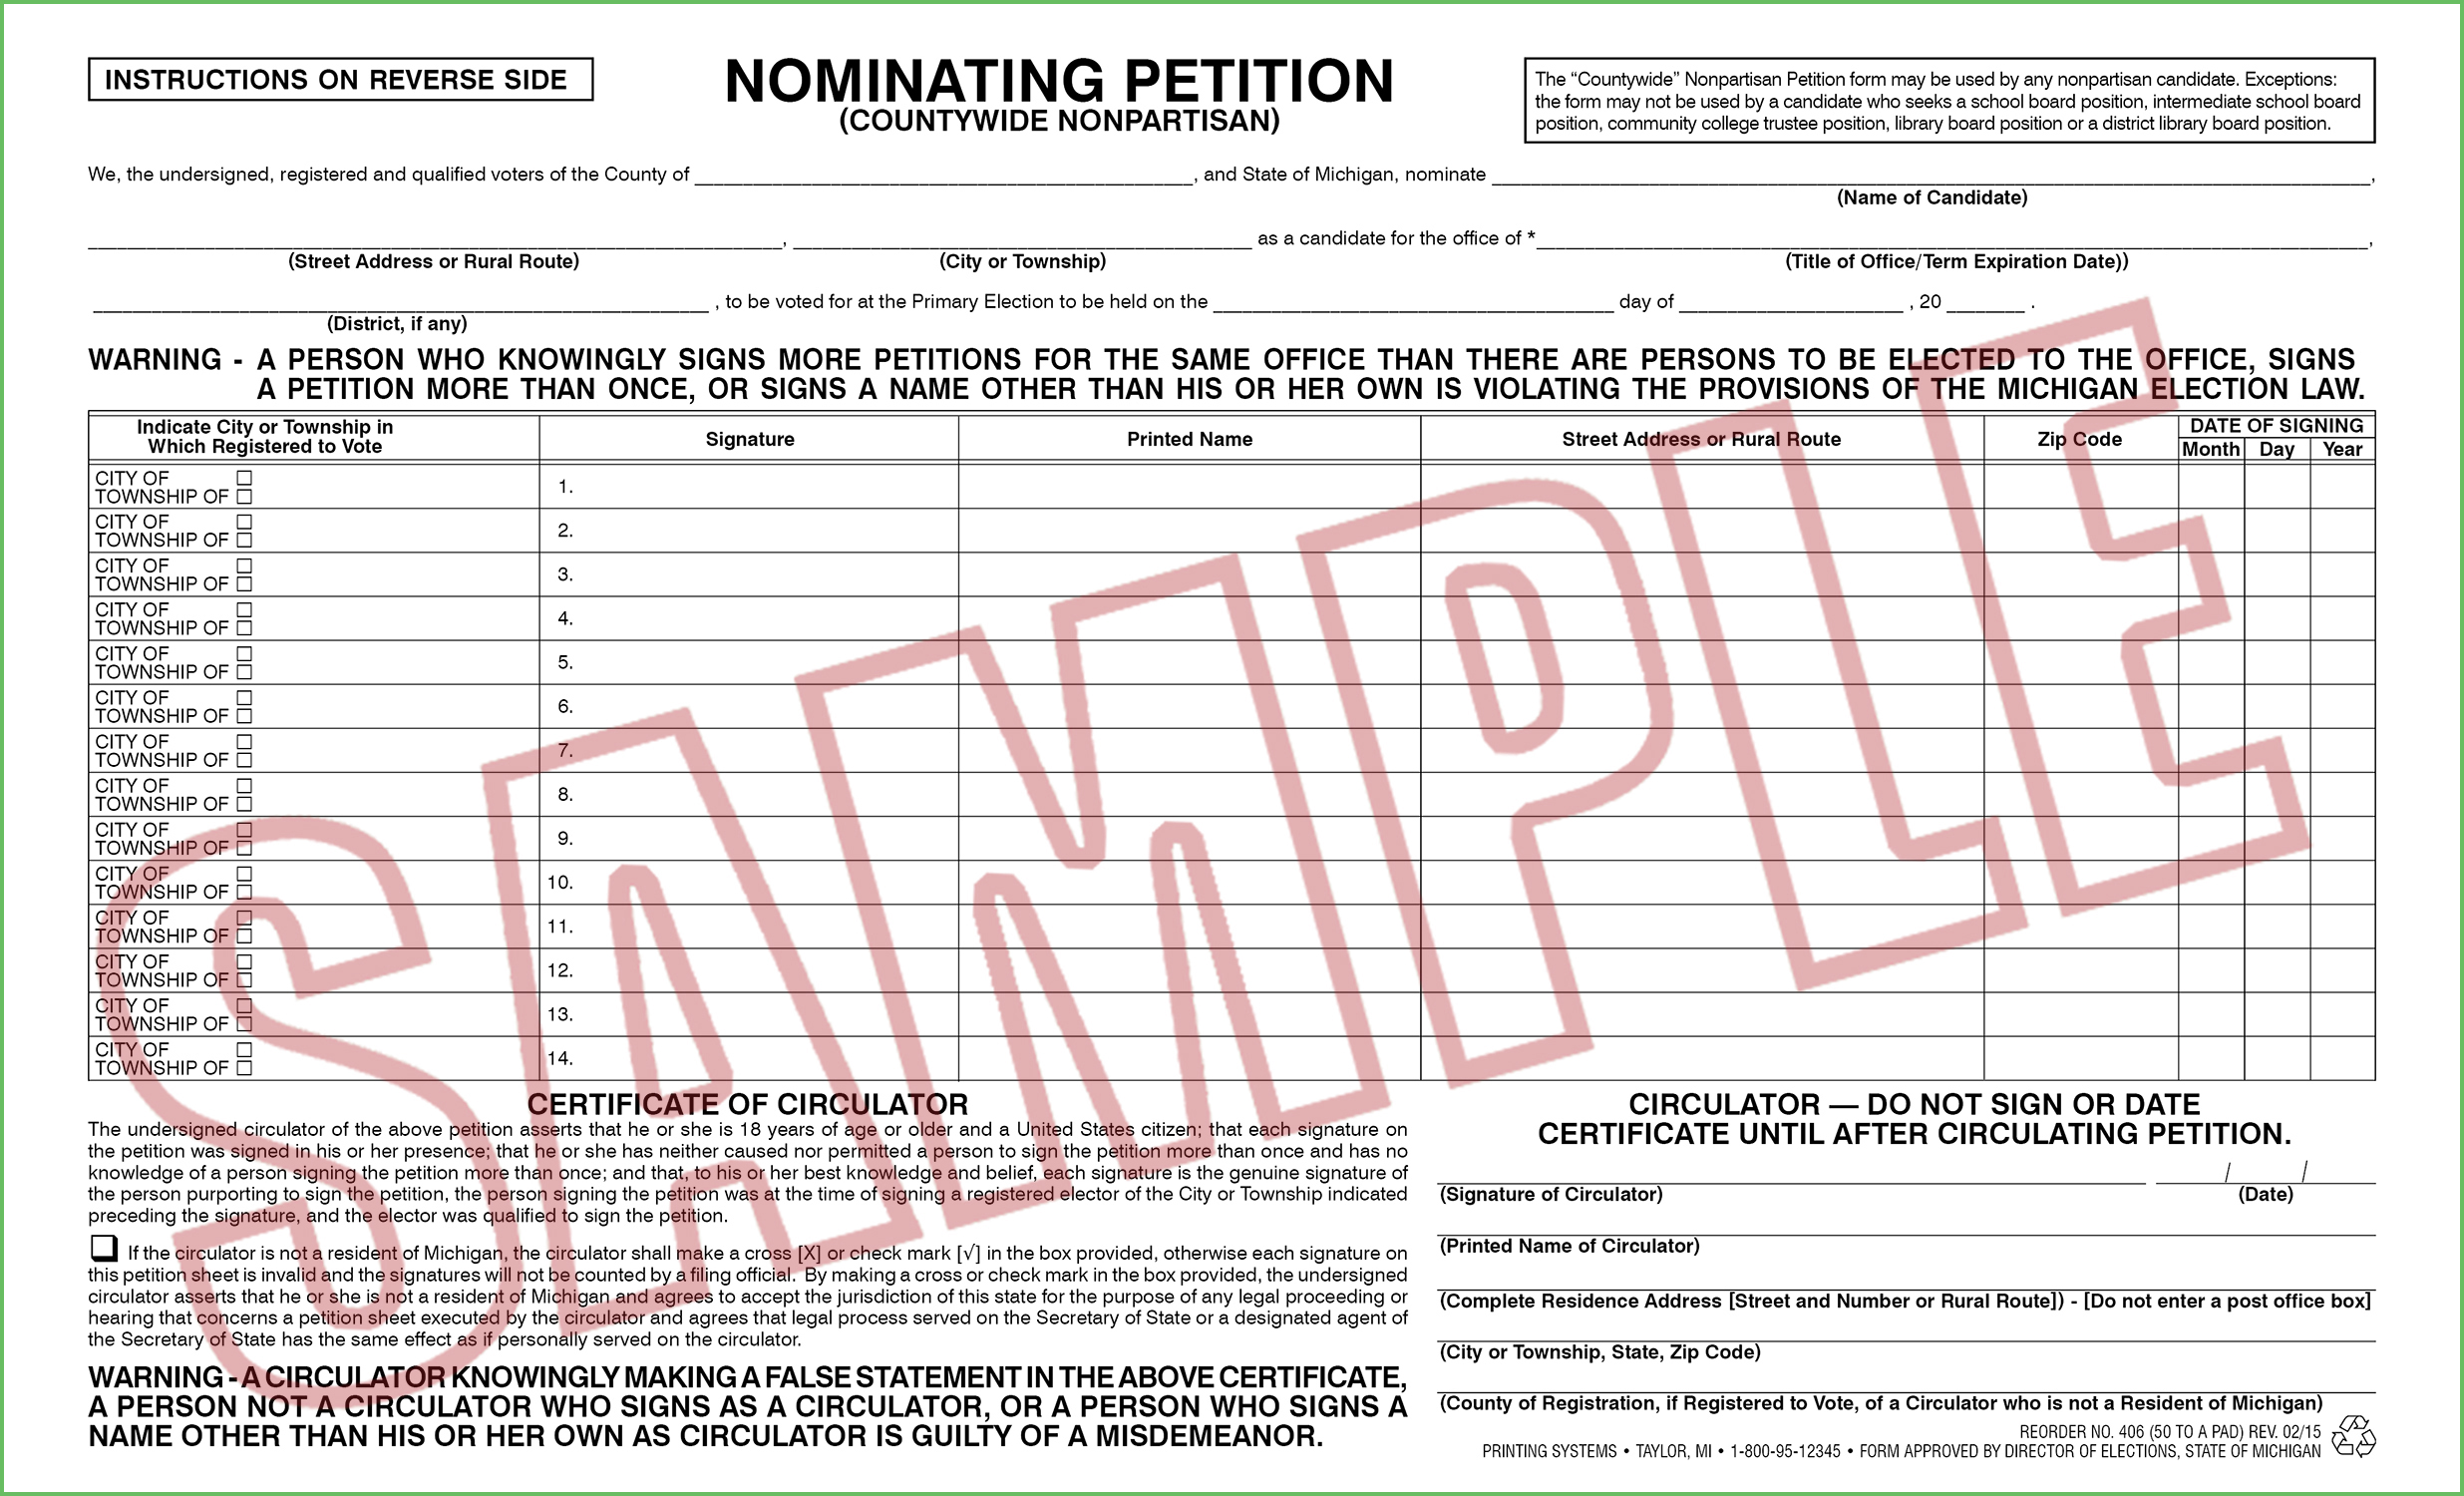 406 Nominating Petition (Countywide) Nonpartisan (50 per pad)